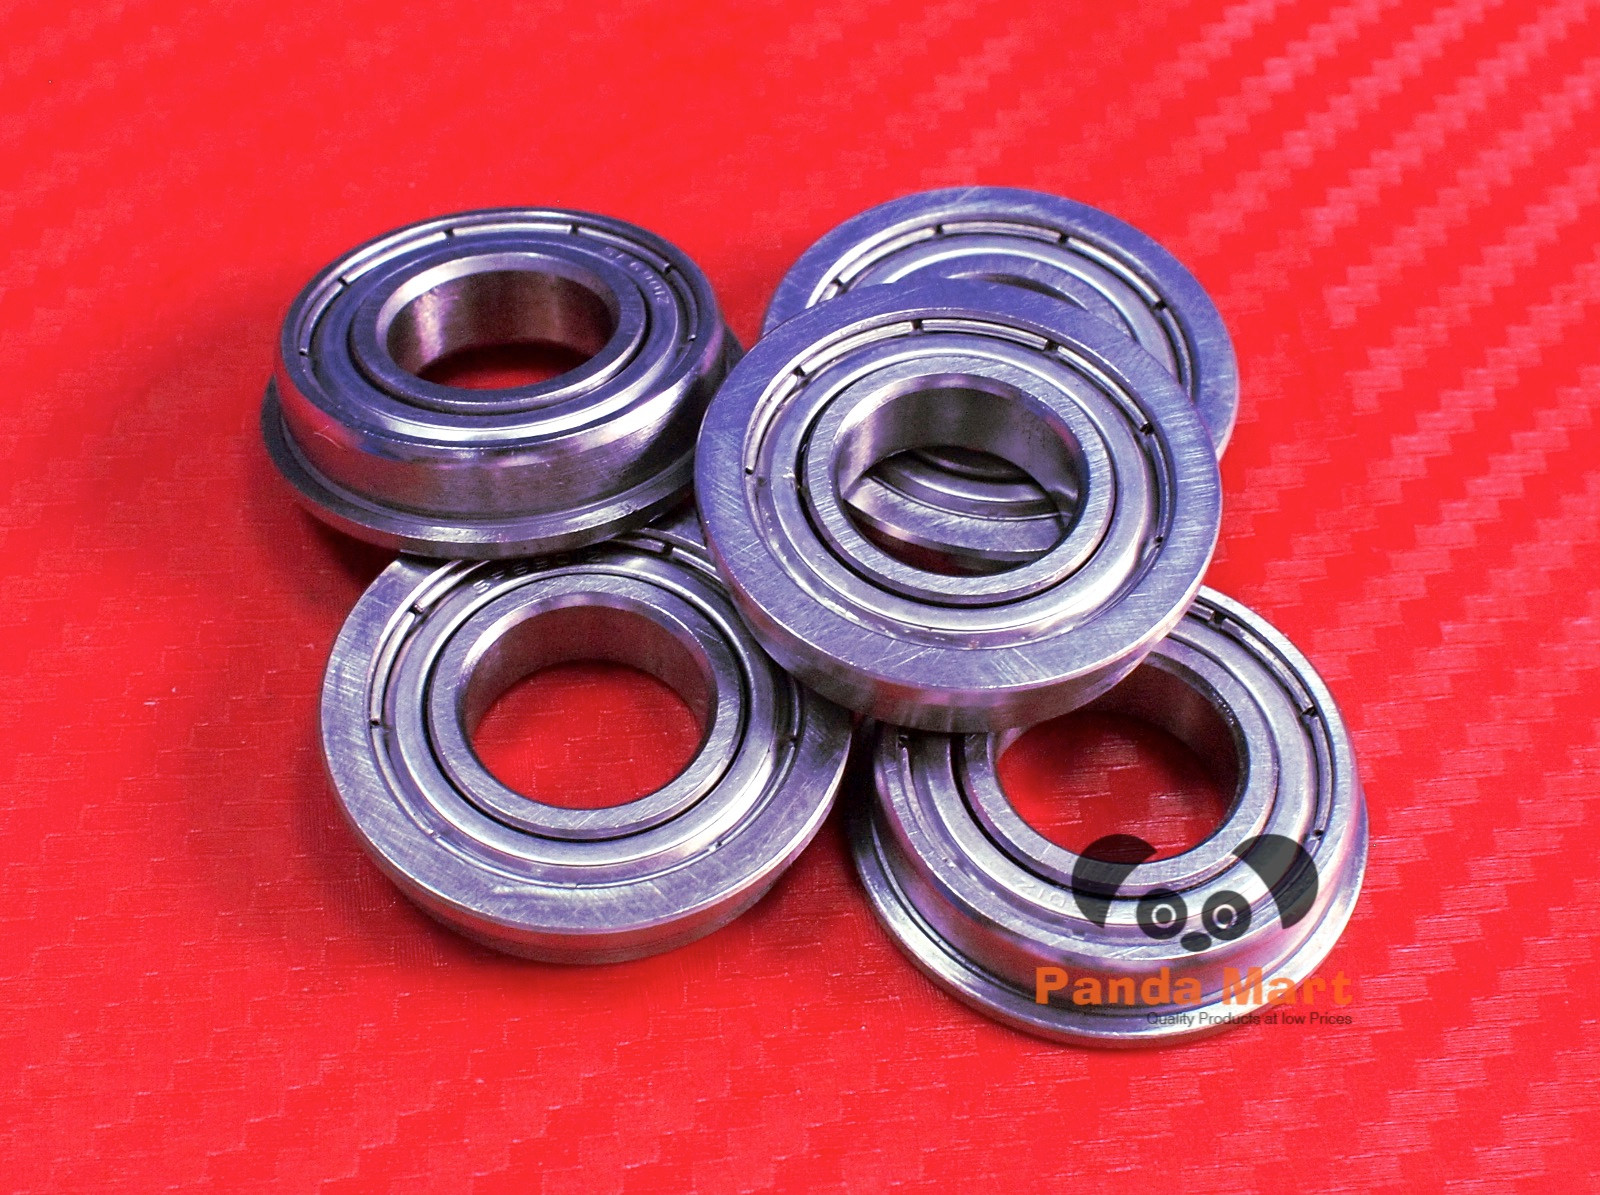 5 PCS 440c Stainless Steel FLANGE Metal Ball Bearing SF696zz F696zz 6x15x5 mm